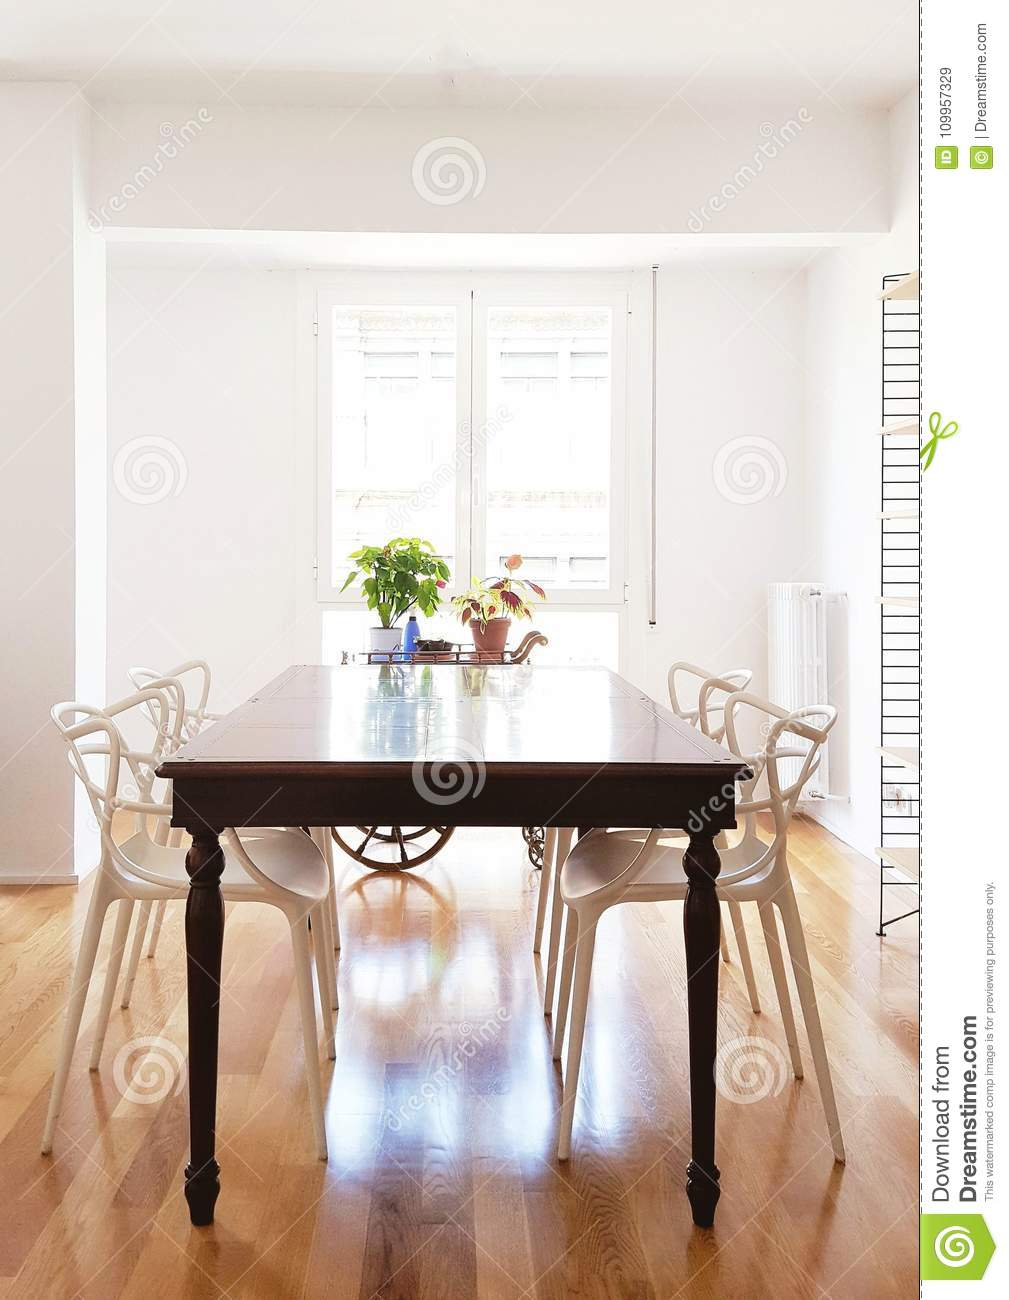 Wooden table in dining room with a window in the background